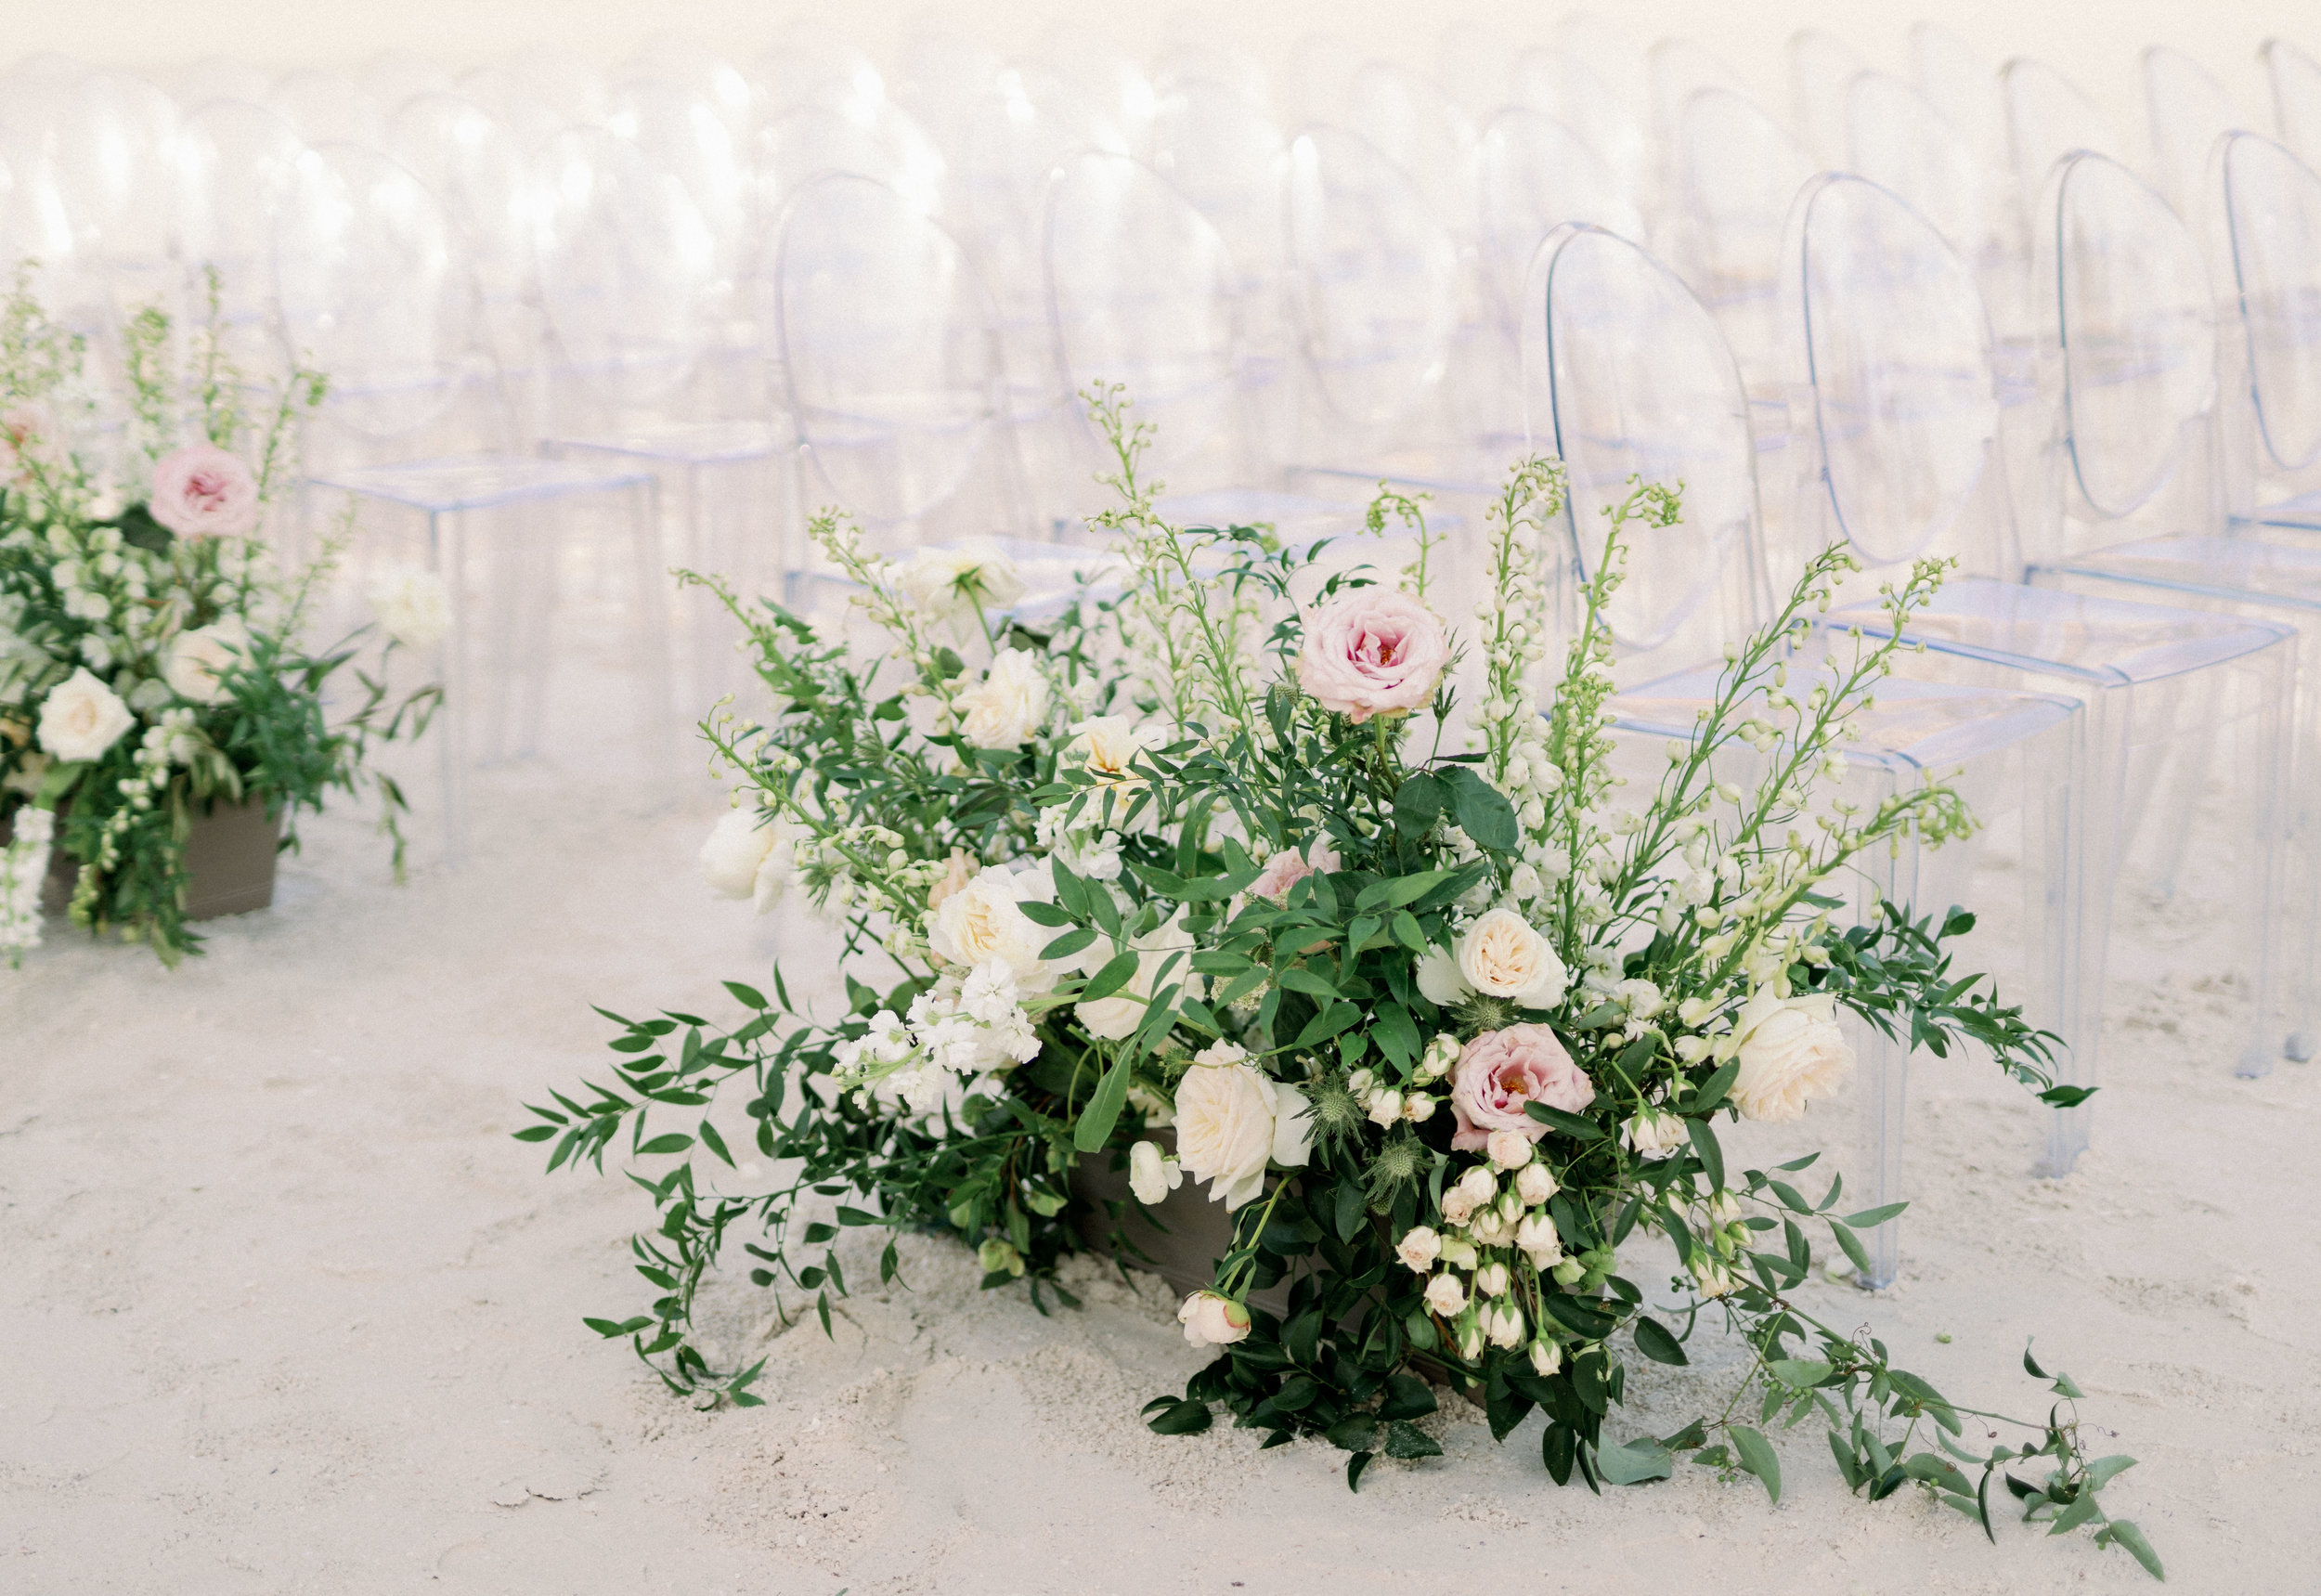 Jet Set Wed :: Organic Greek Grecian Inspired Garden Nuptials on the Gulf of Mexico